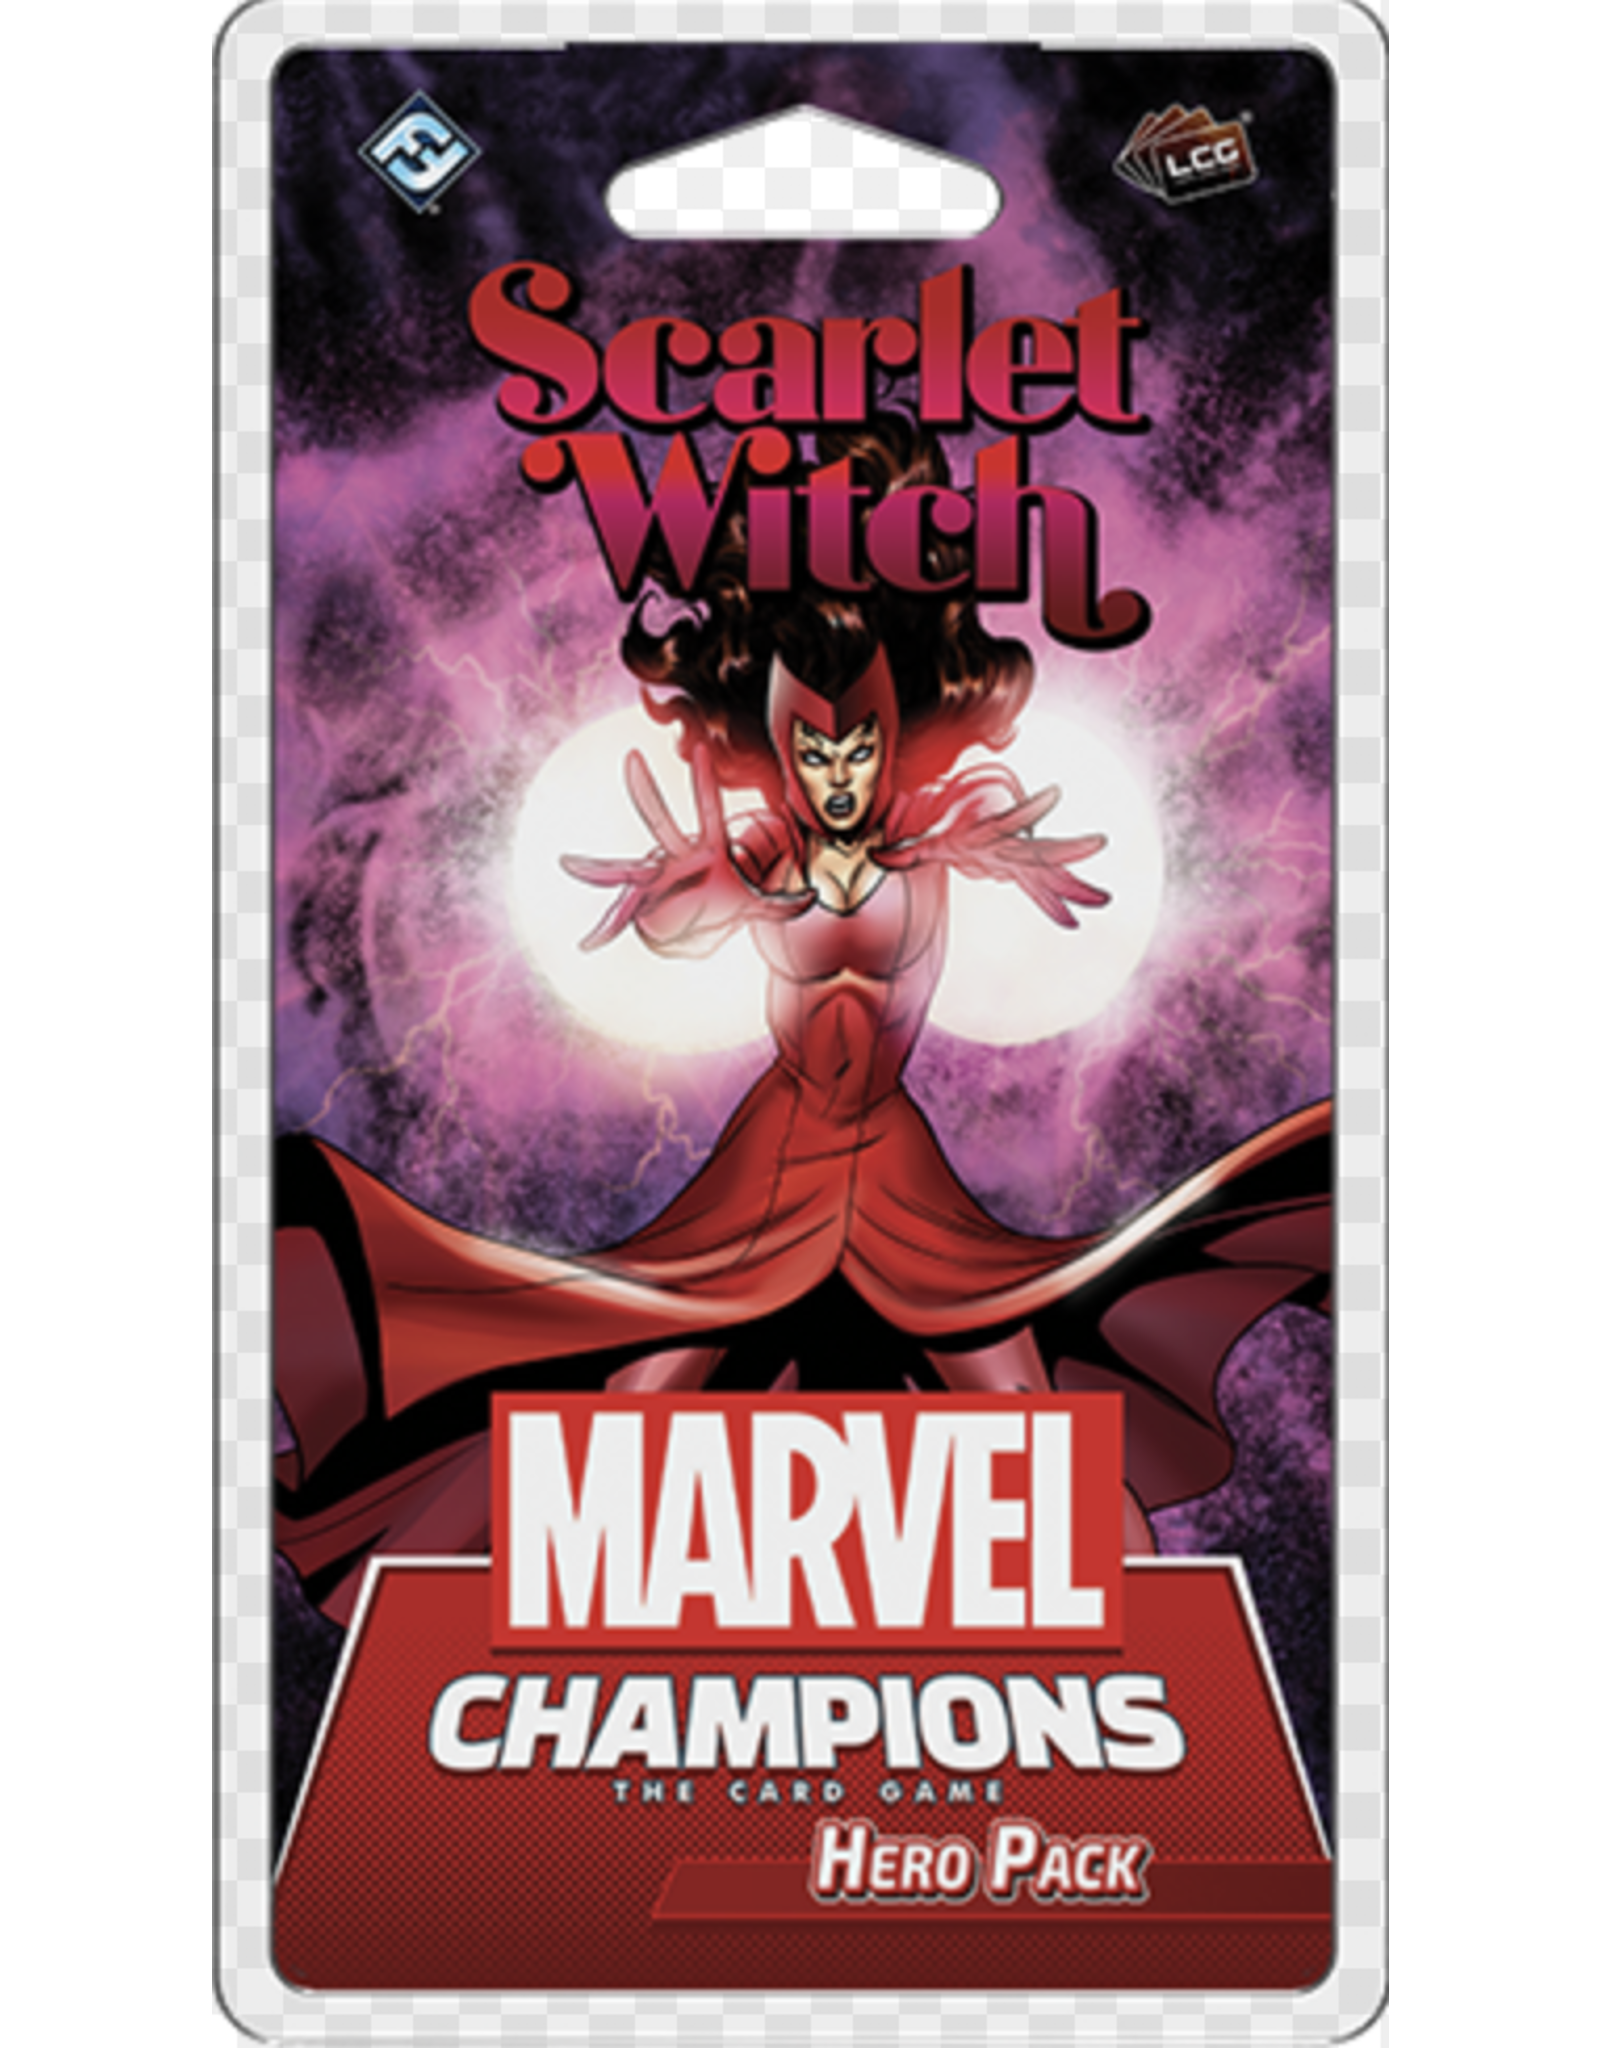 Fantasy Flight Games Marvel Champions LCG: Scarlet Witch Hero Pack